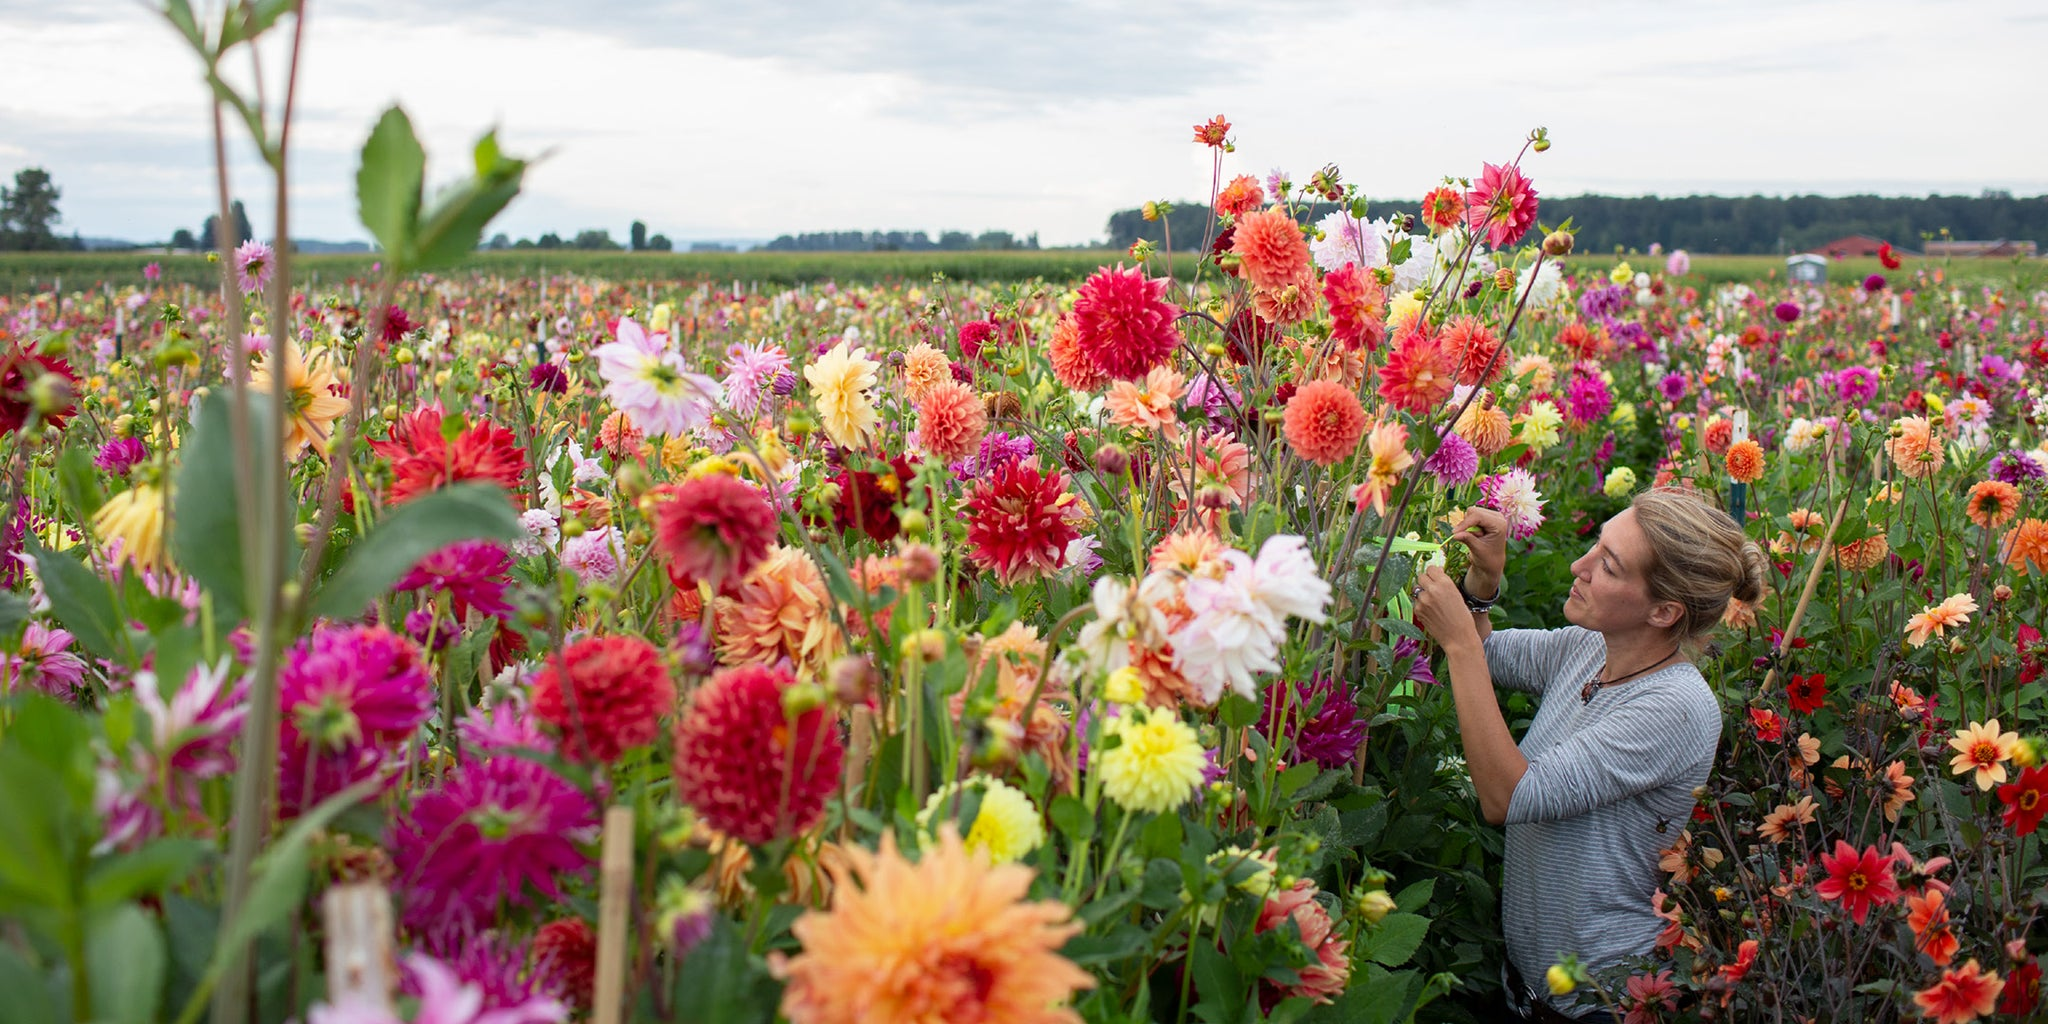 Author Erin Benzakein cutting dahlias in a field